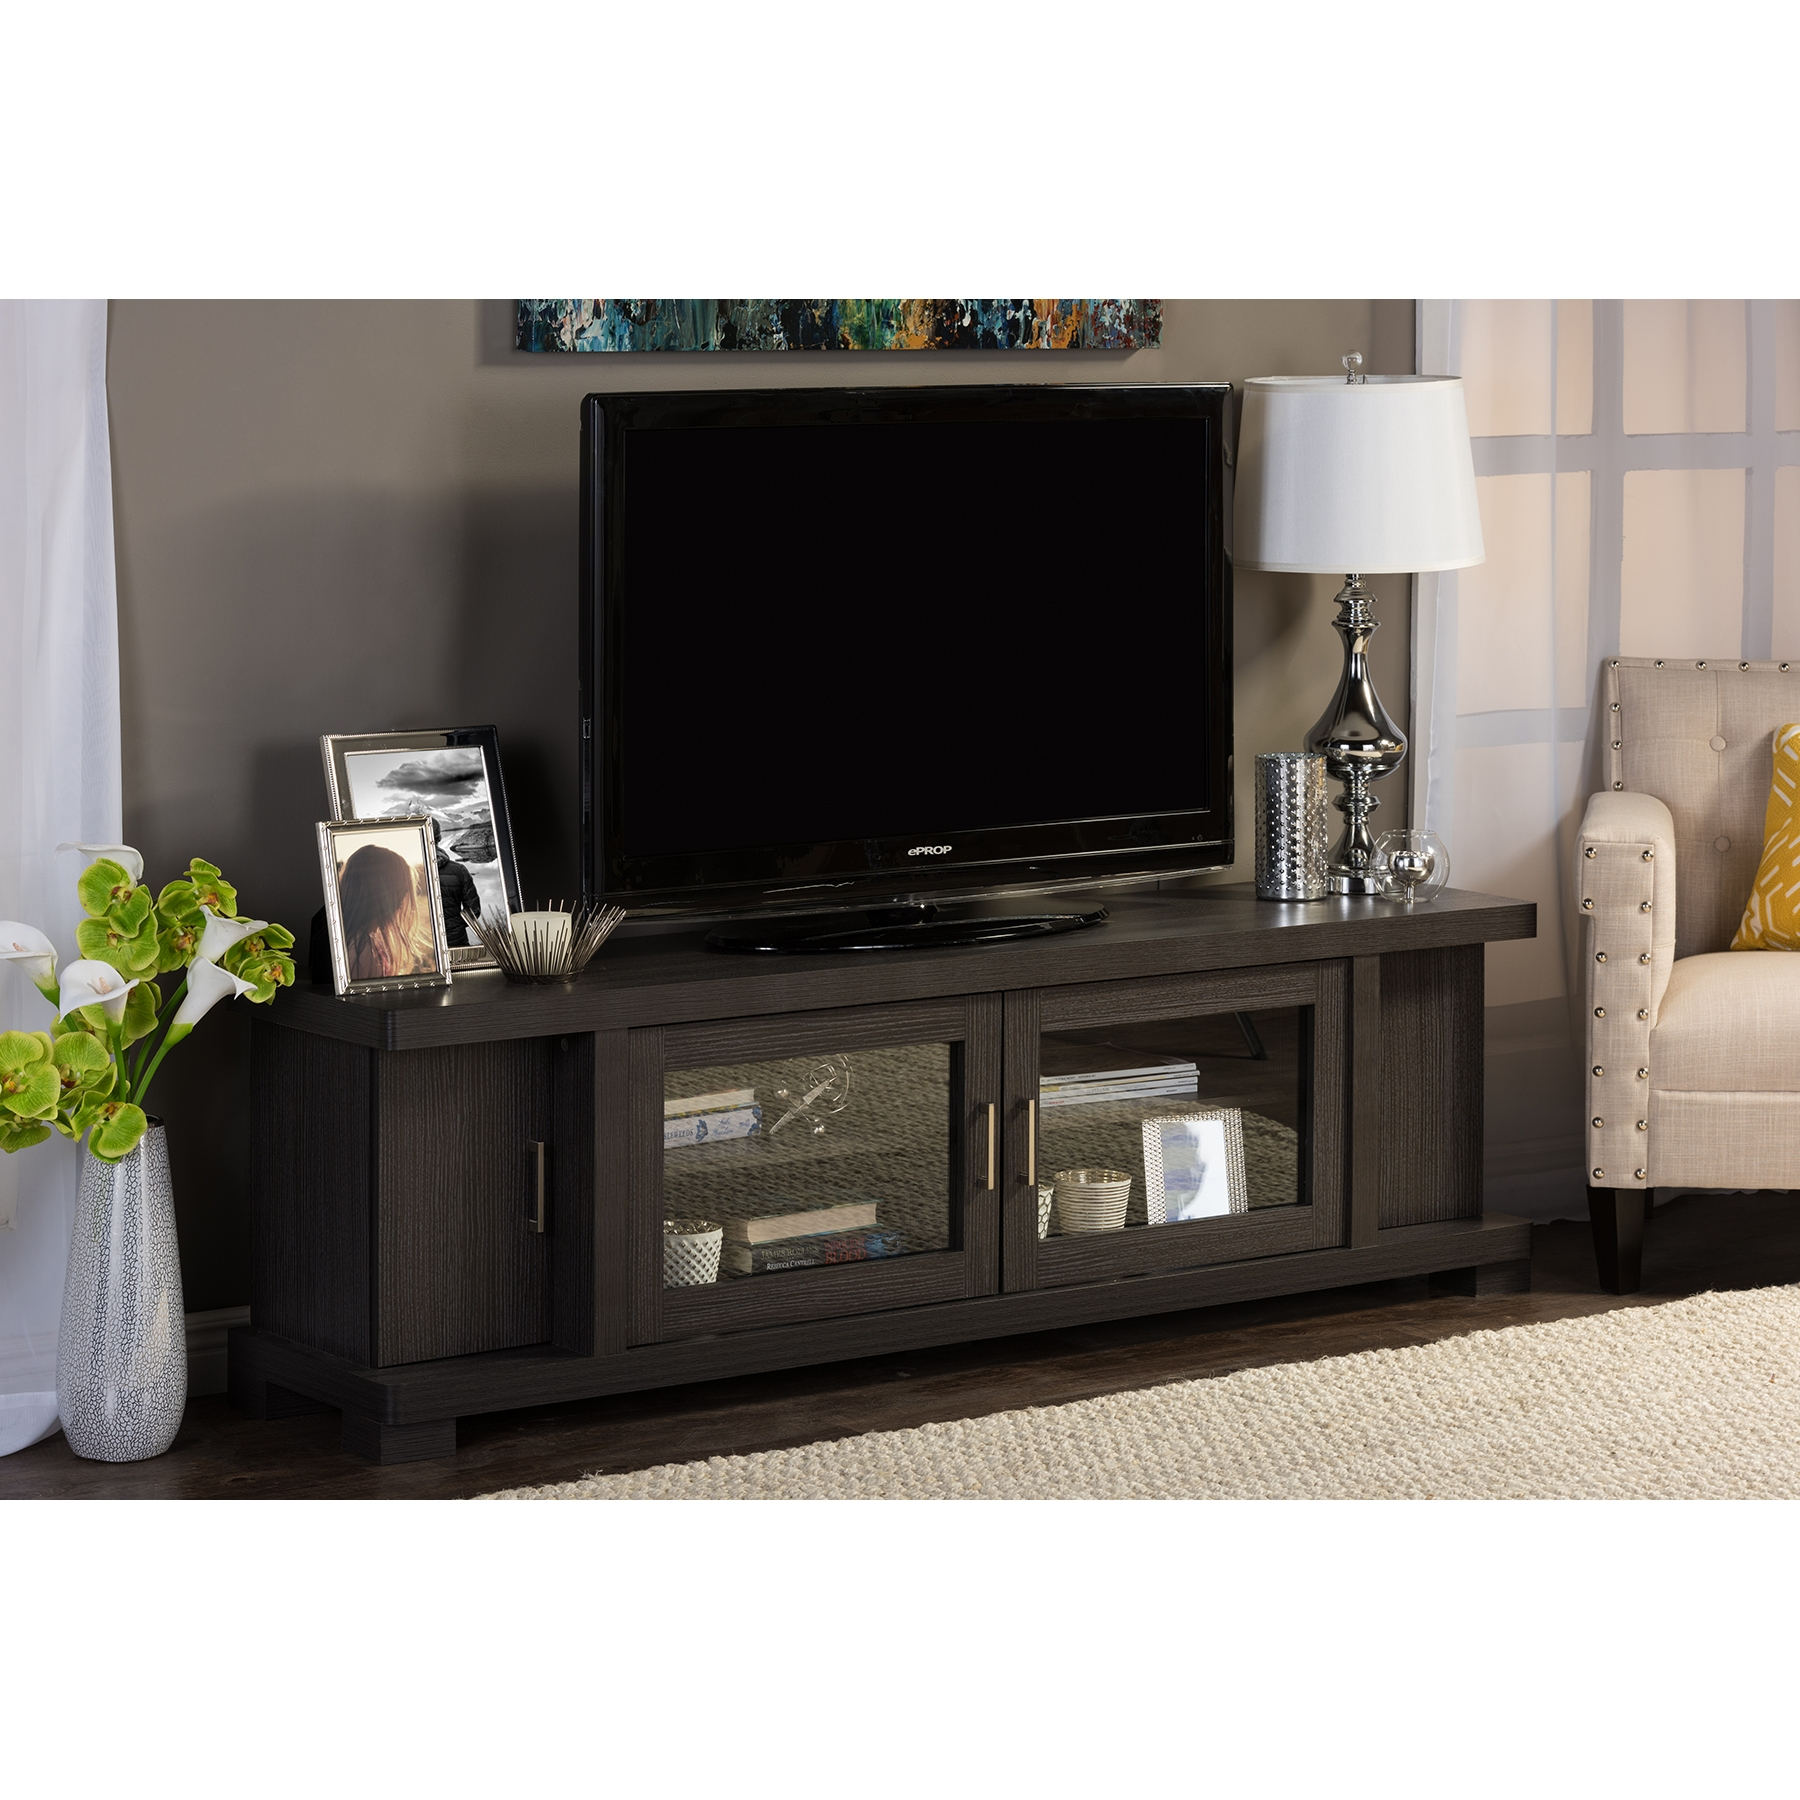 Marvelous ... Baxton Studio Viveka 70 Inch Dark Brown Wood TV Cabinet With 2 Glass  Doors And